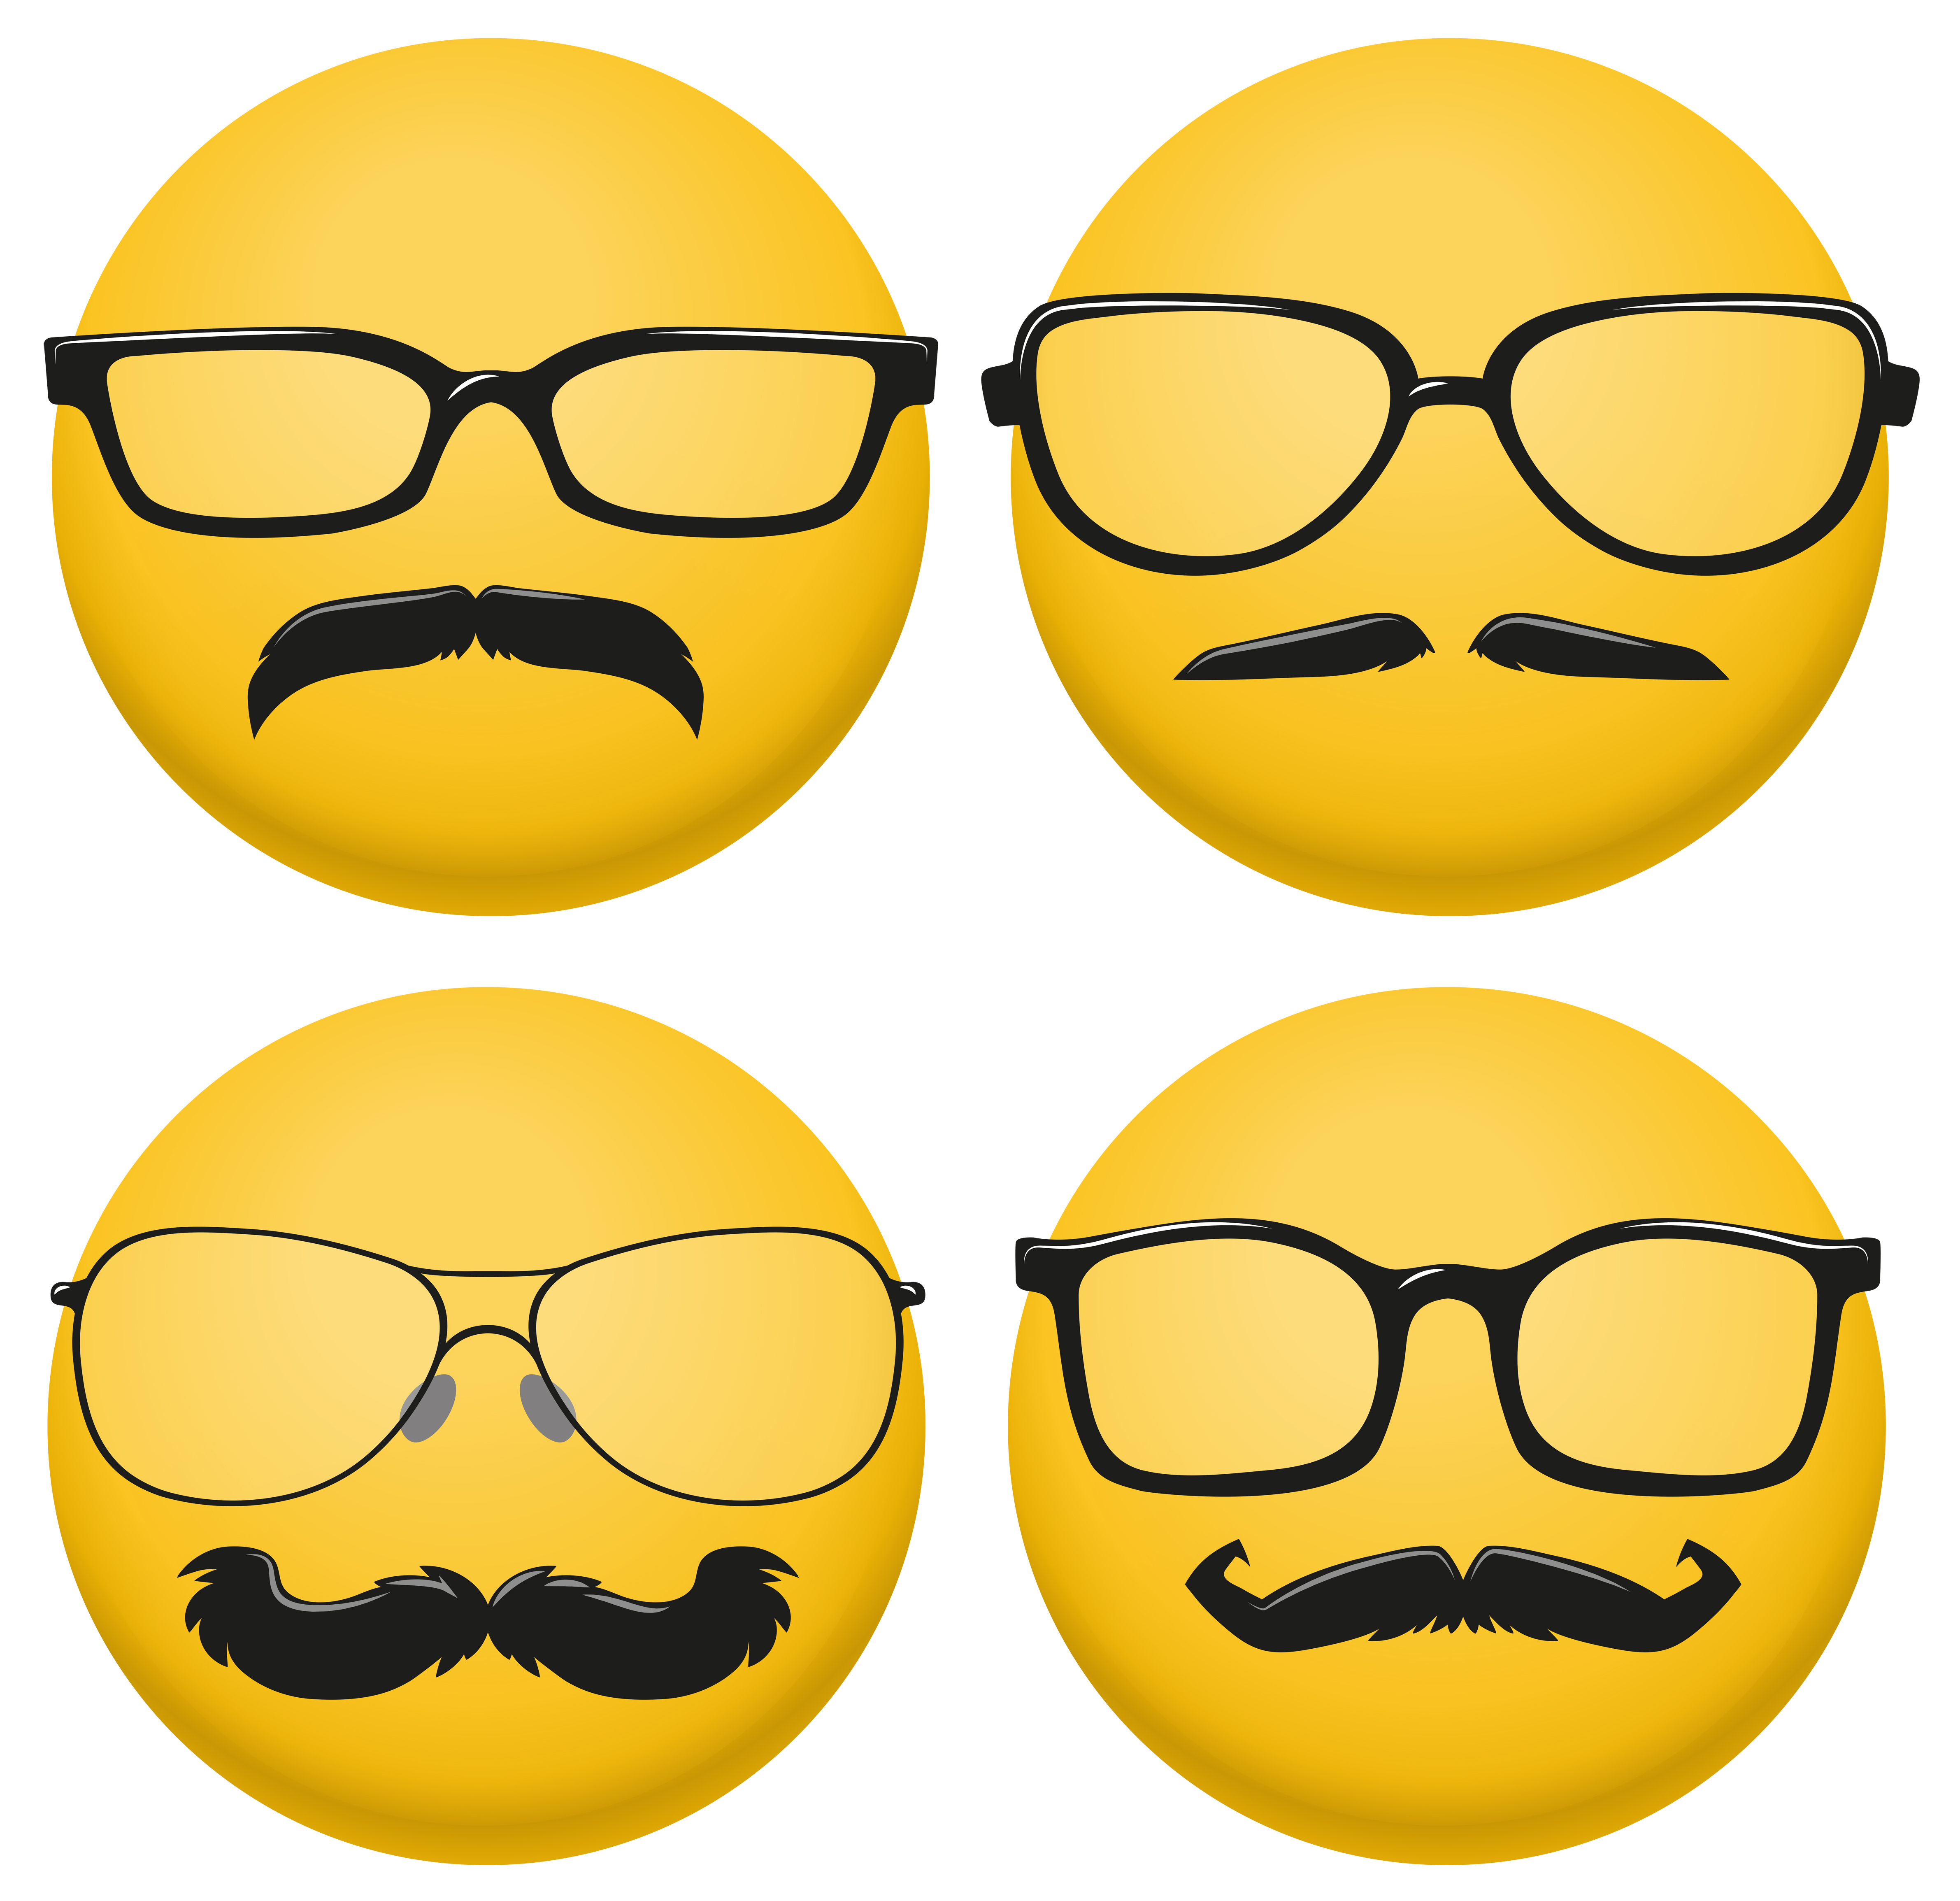 Magnificent Different Styles Of Glasses And Mustaches On Yellow Ball Schematic Wiring Diagrams Amerangerunnerswayorg